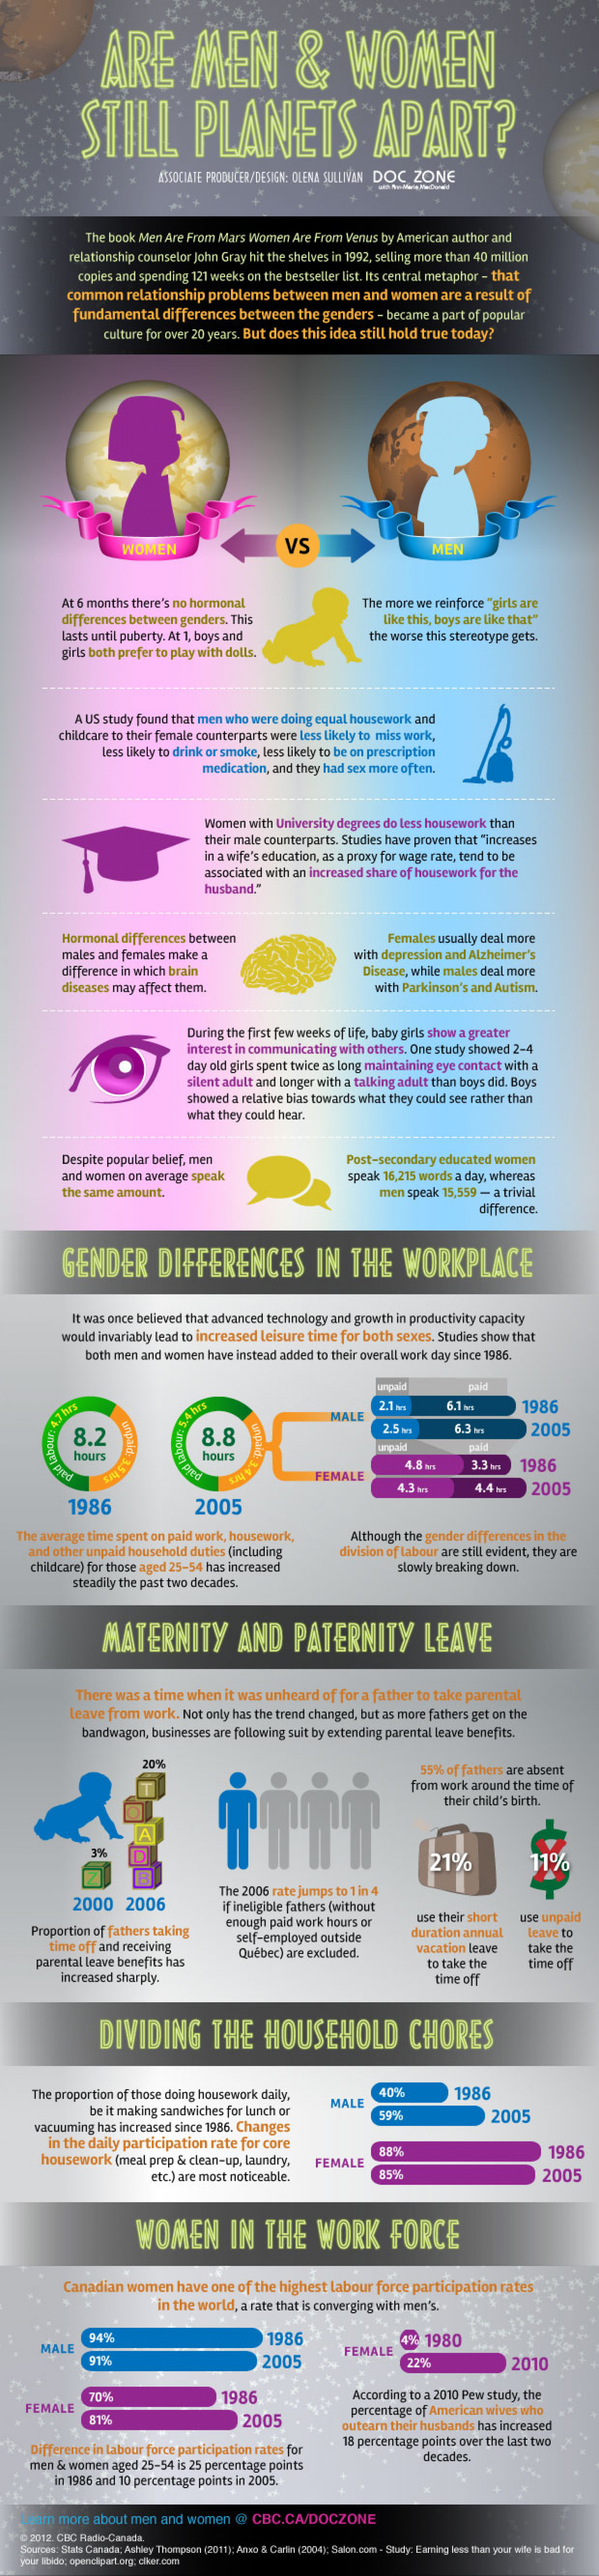 Are Men & Women Still Planets Apart? Infographic